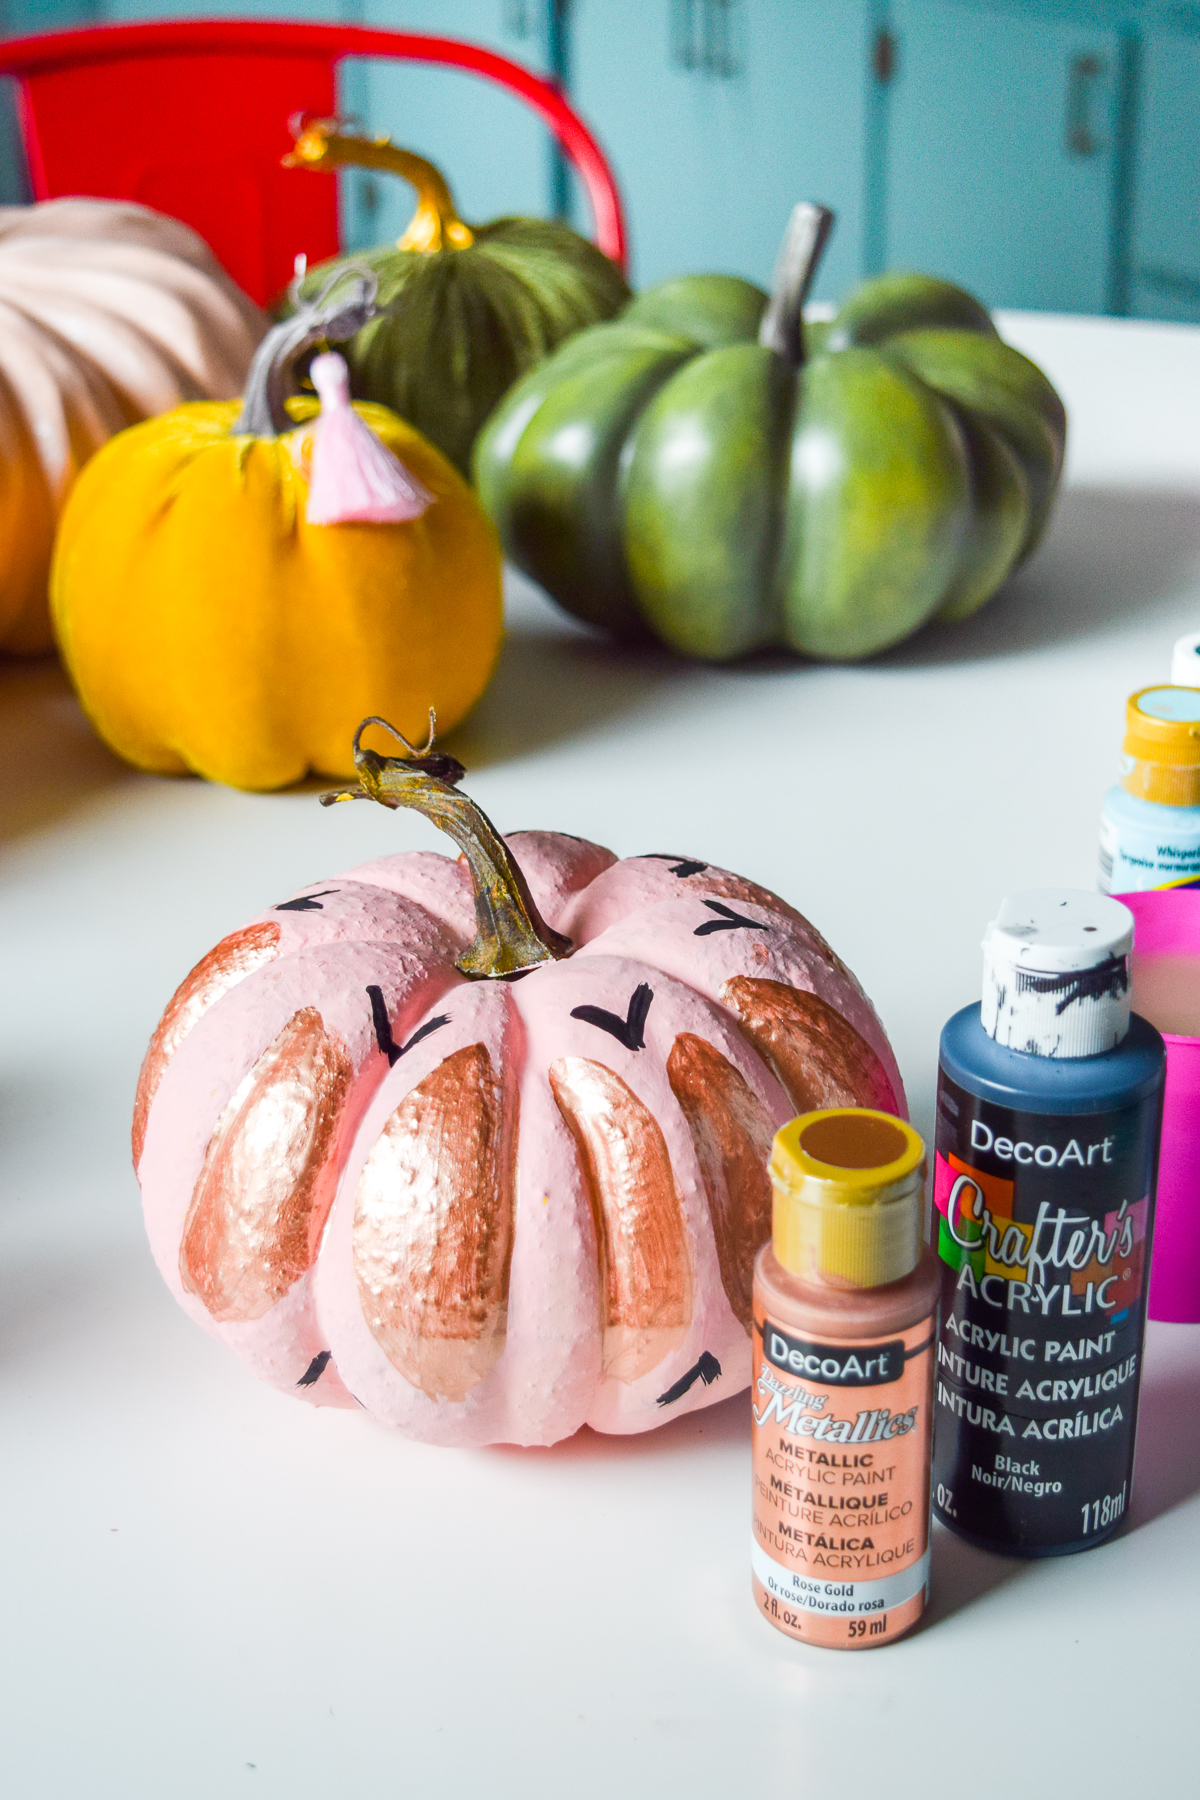 5 Colorful Pumpkin Painting Ideas that will bust you out of your creative rut, and have all your friends asking where you got such cool pumpkins this year. Using DecoArt's acrylic paints you can easily transfrom and re-use crafting pumpkins to create bold pops of colour.